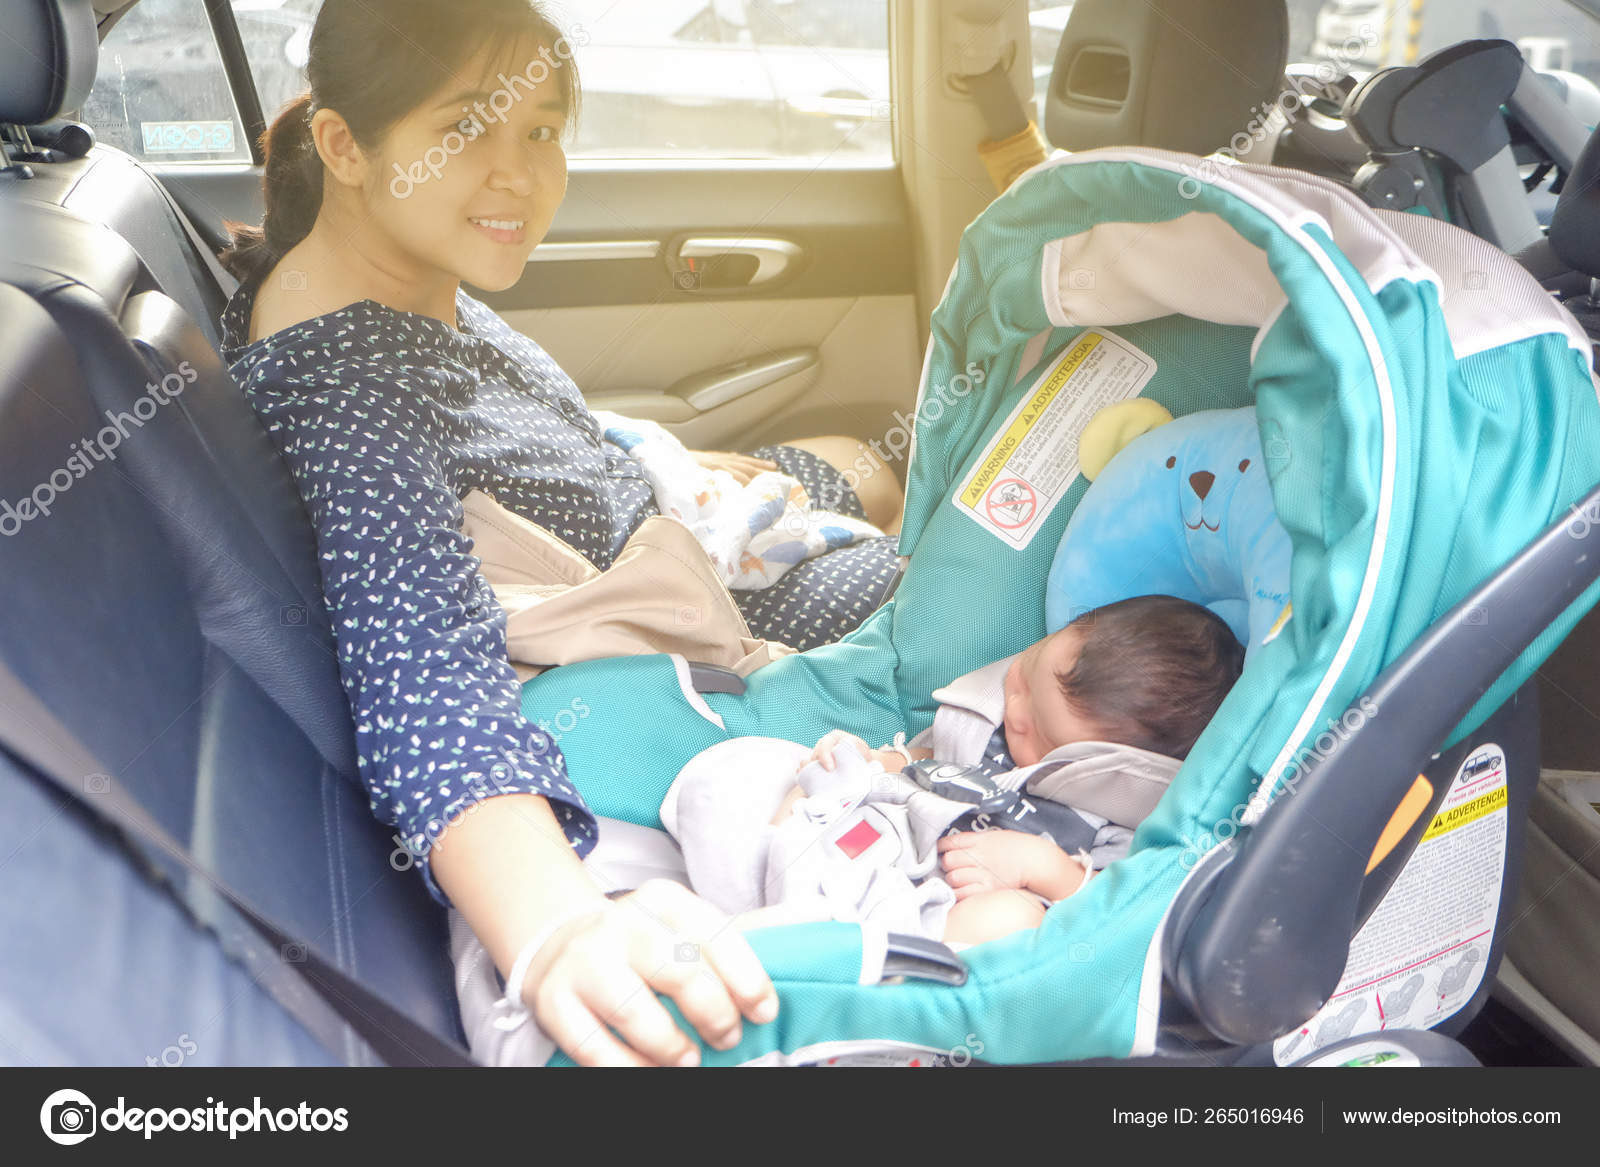 Picture of: Mom With Infant Child Boy Inside Savfty Car Seat Stock Photo C Benedixs 265016946